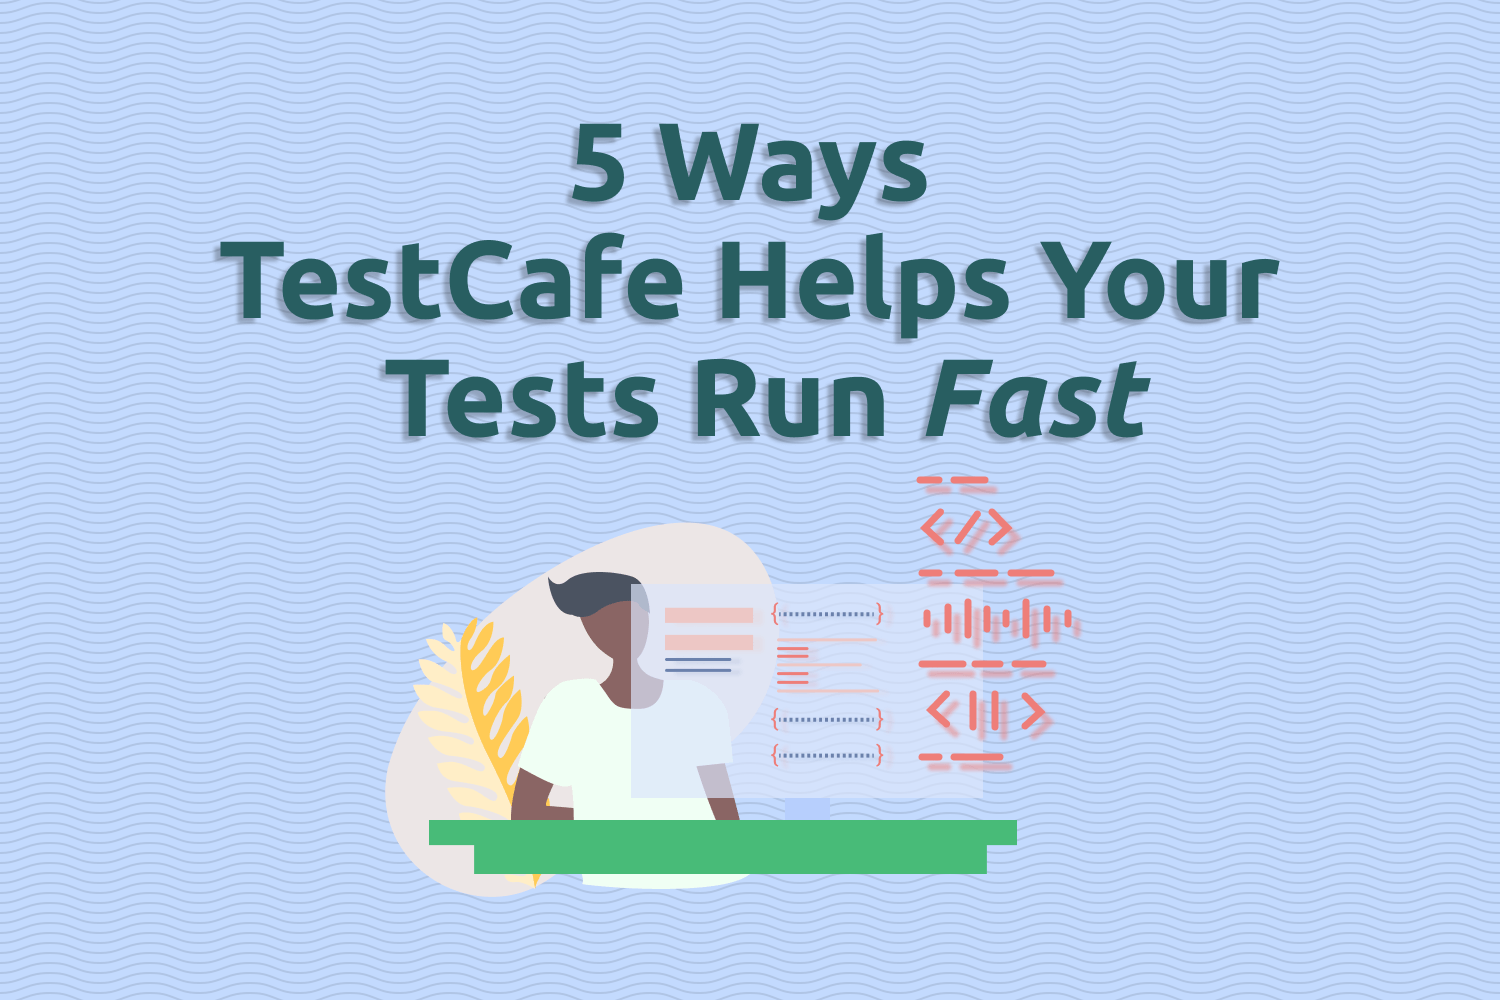 5 Ways TestCafe Helps Your Tests Run Fast